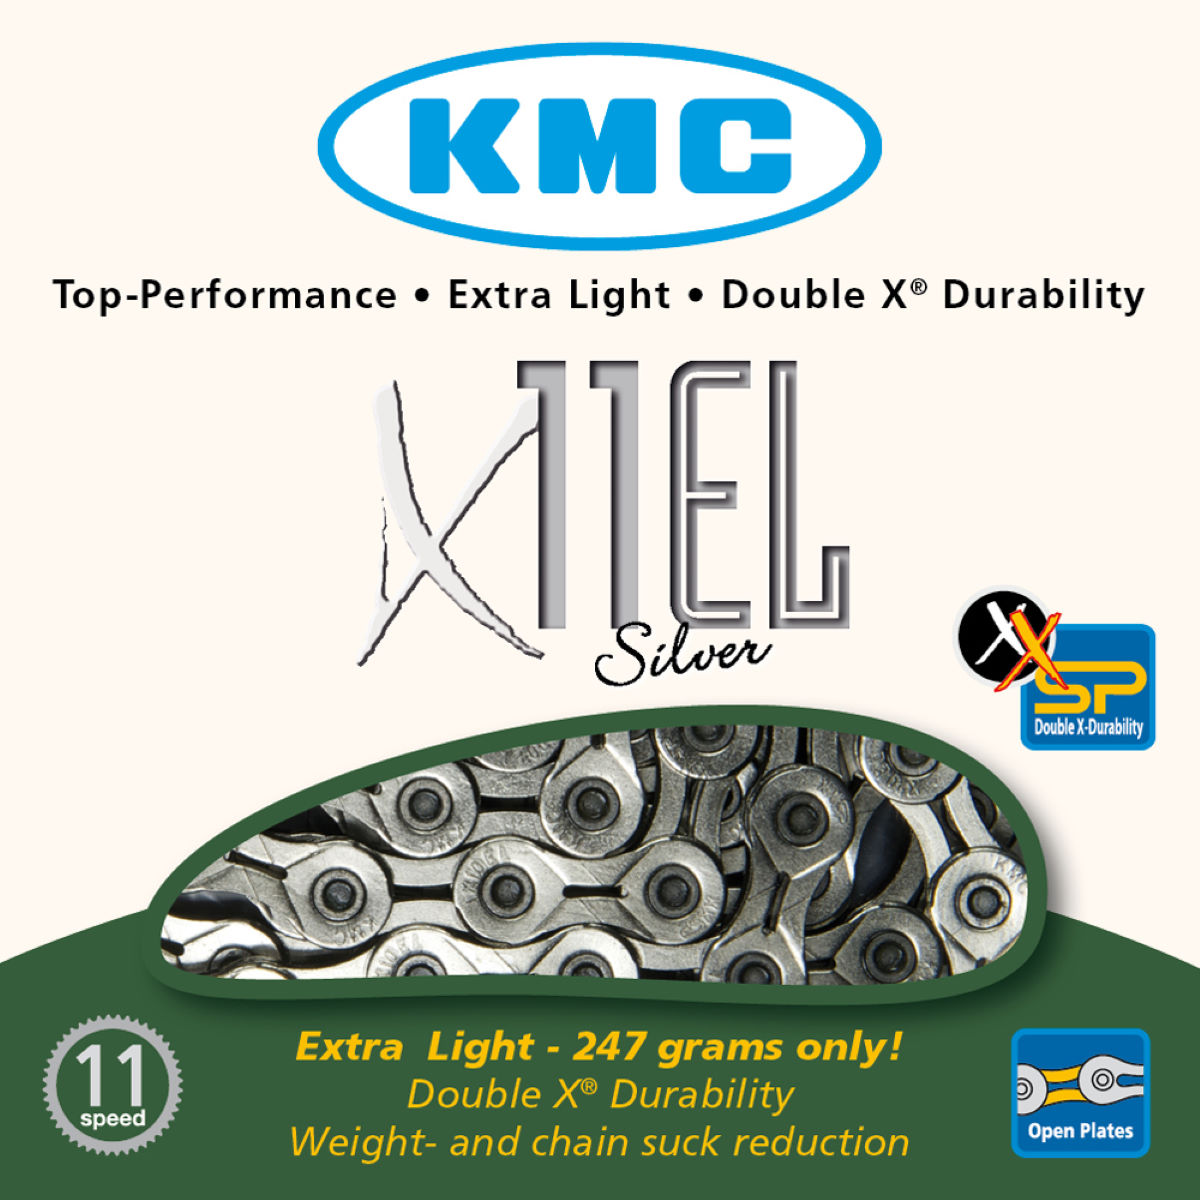 Chaîne KMC X11-EL 11 vitesses (argentée) - 11 Speed, 114 Links